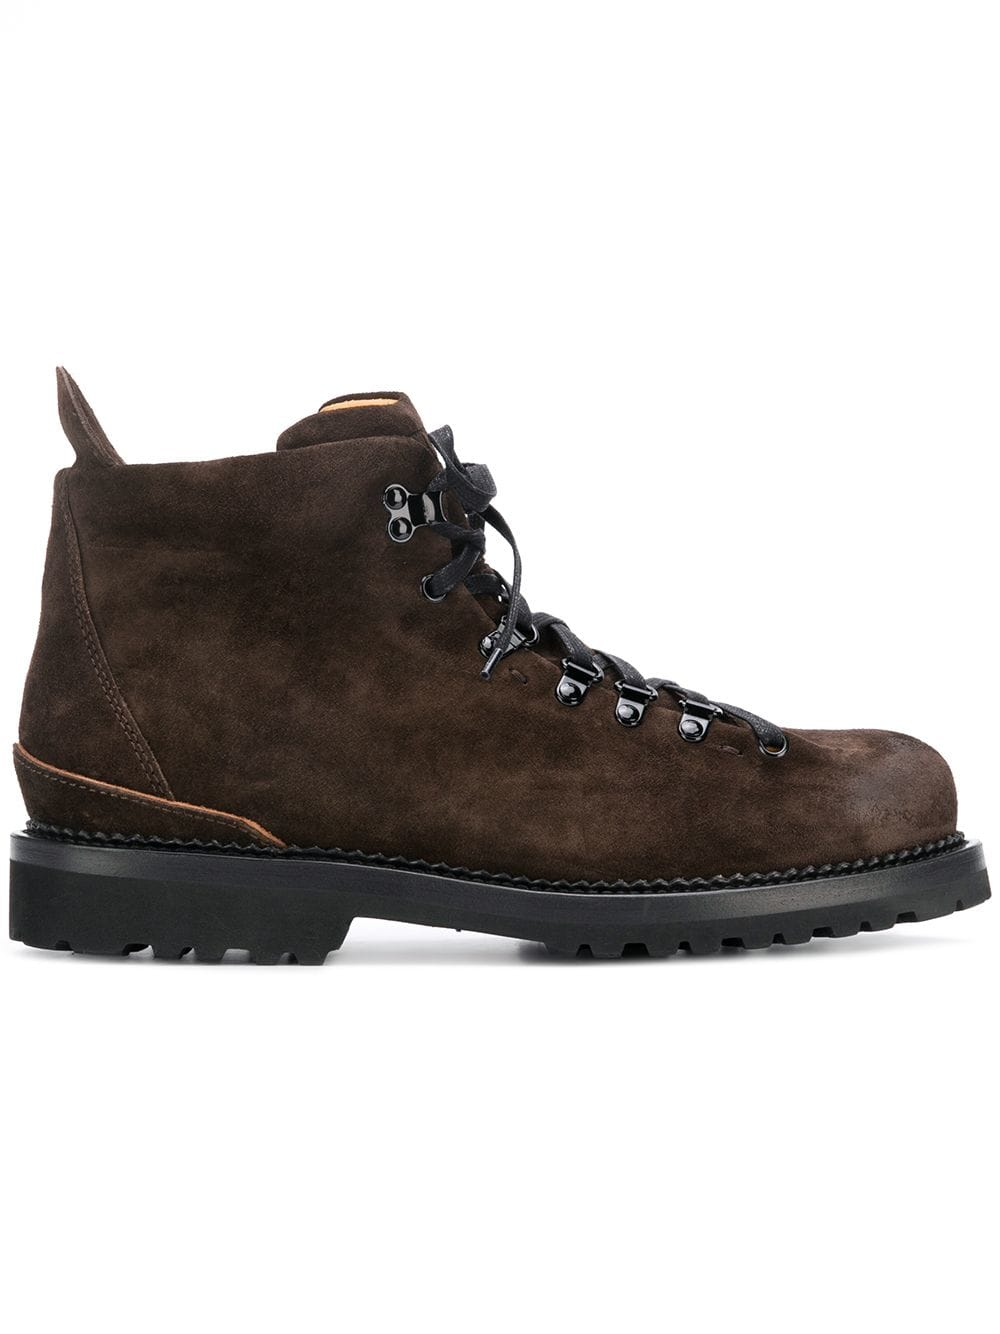 Buttero hiker boots at Farfetch